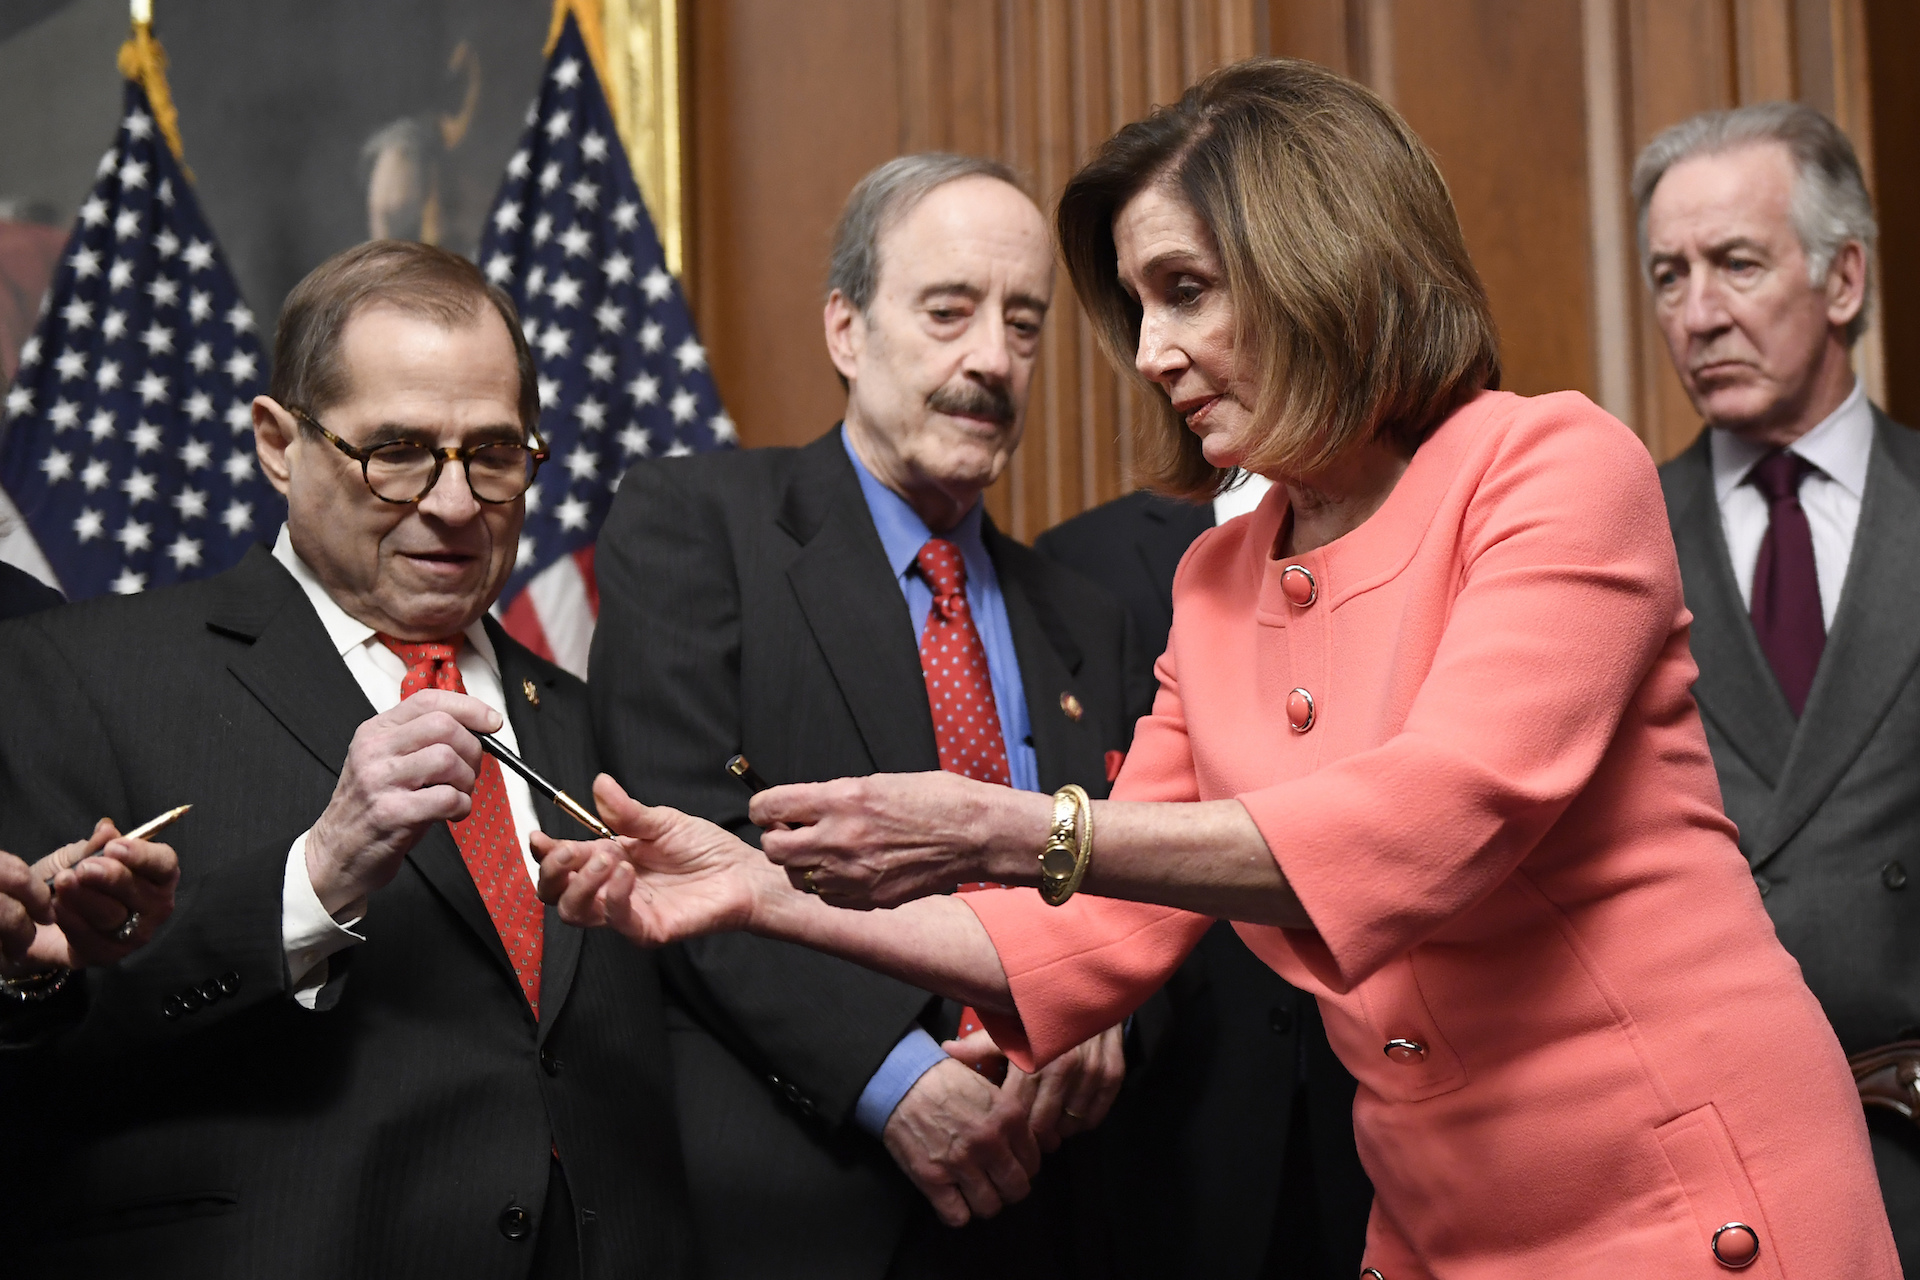 Conservatives Are Flipping Out Over Nancy Pelosi's Pens